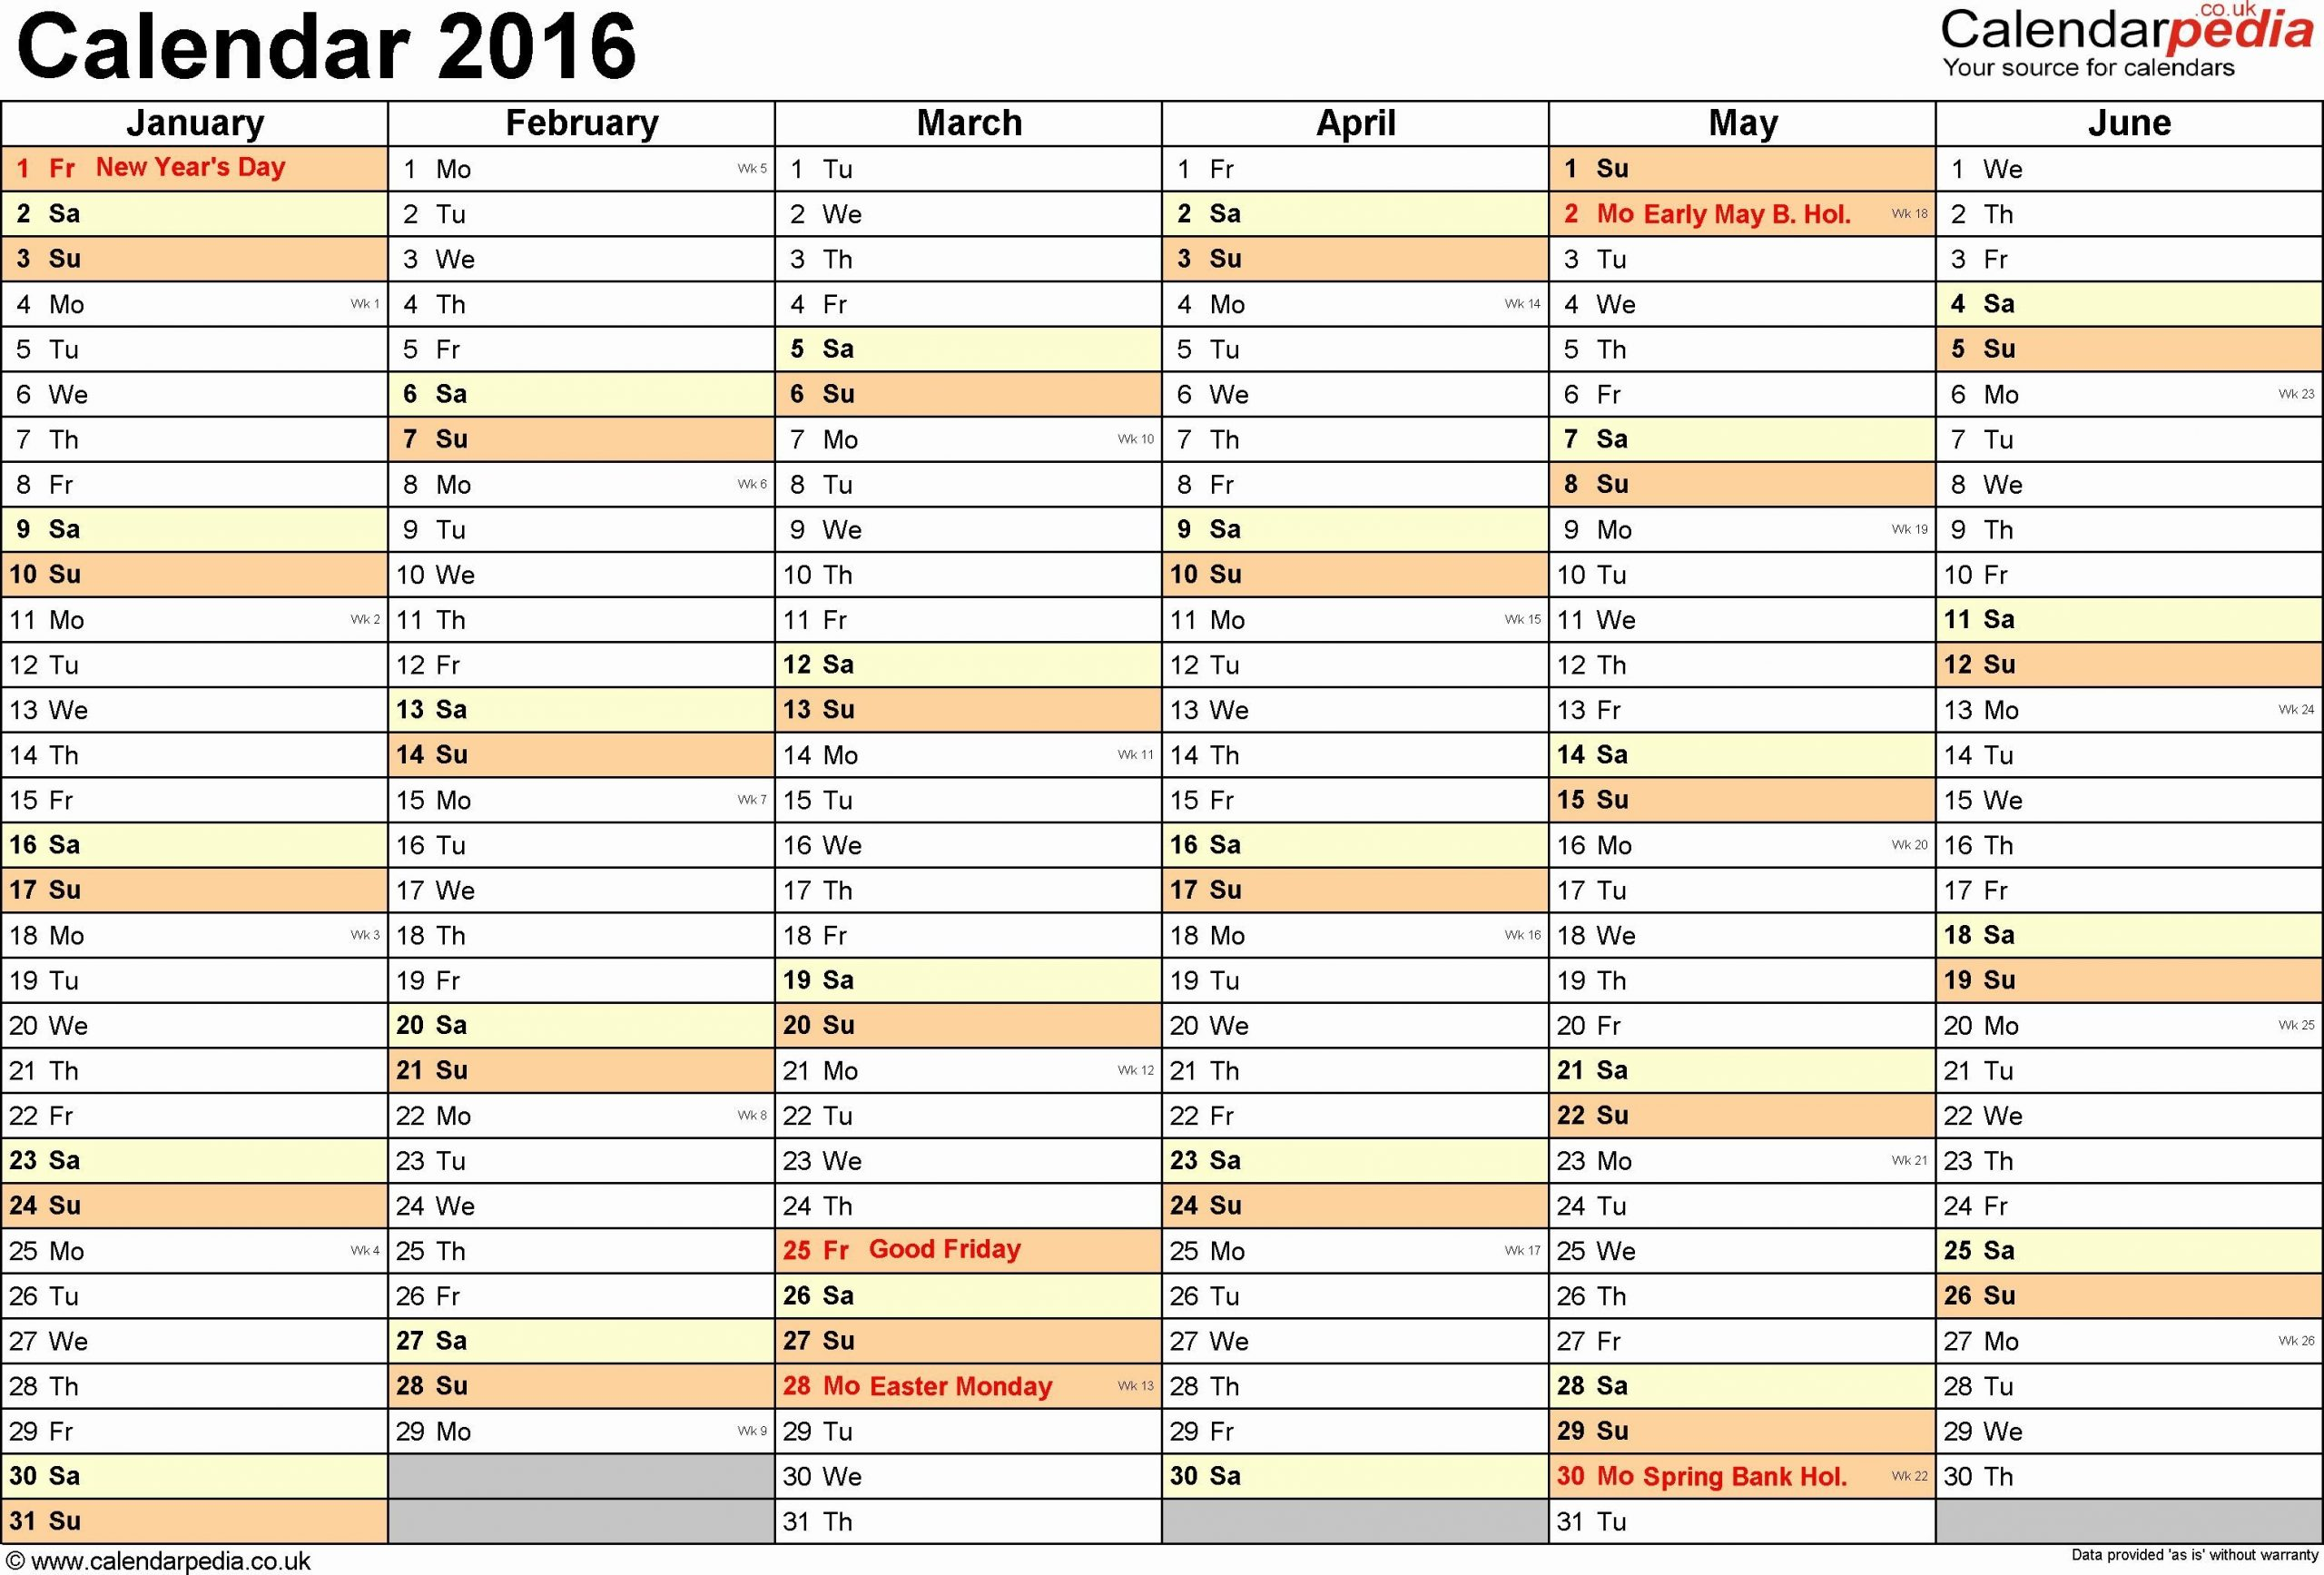 Agenda With Time Slots In 2020 | Free Printable Calendar